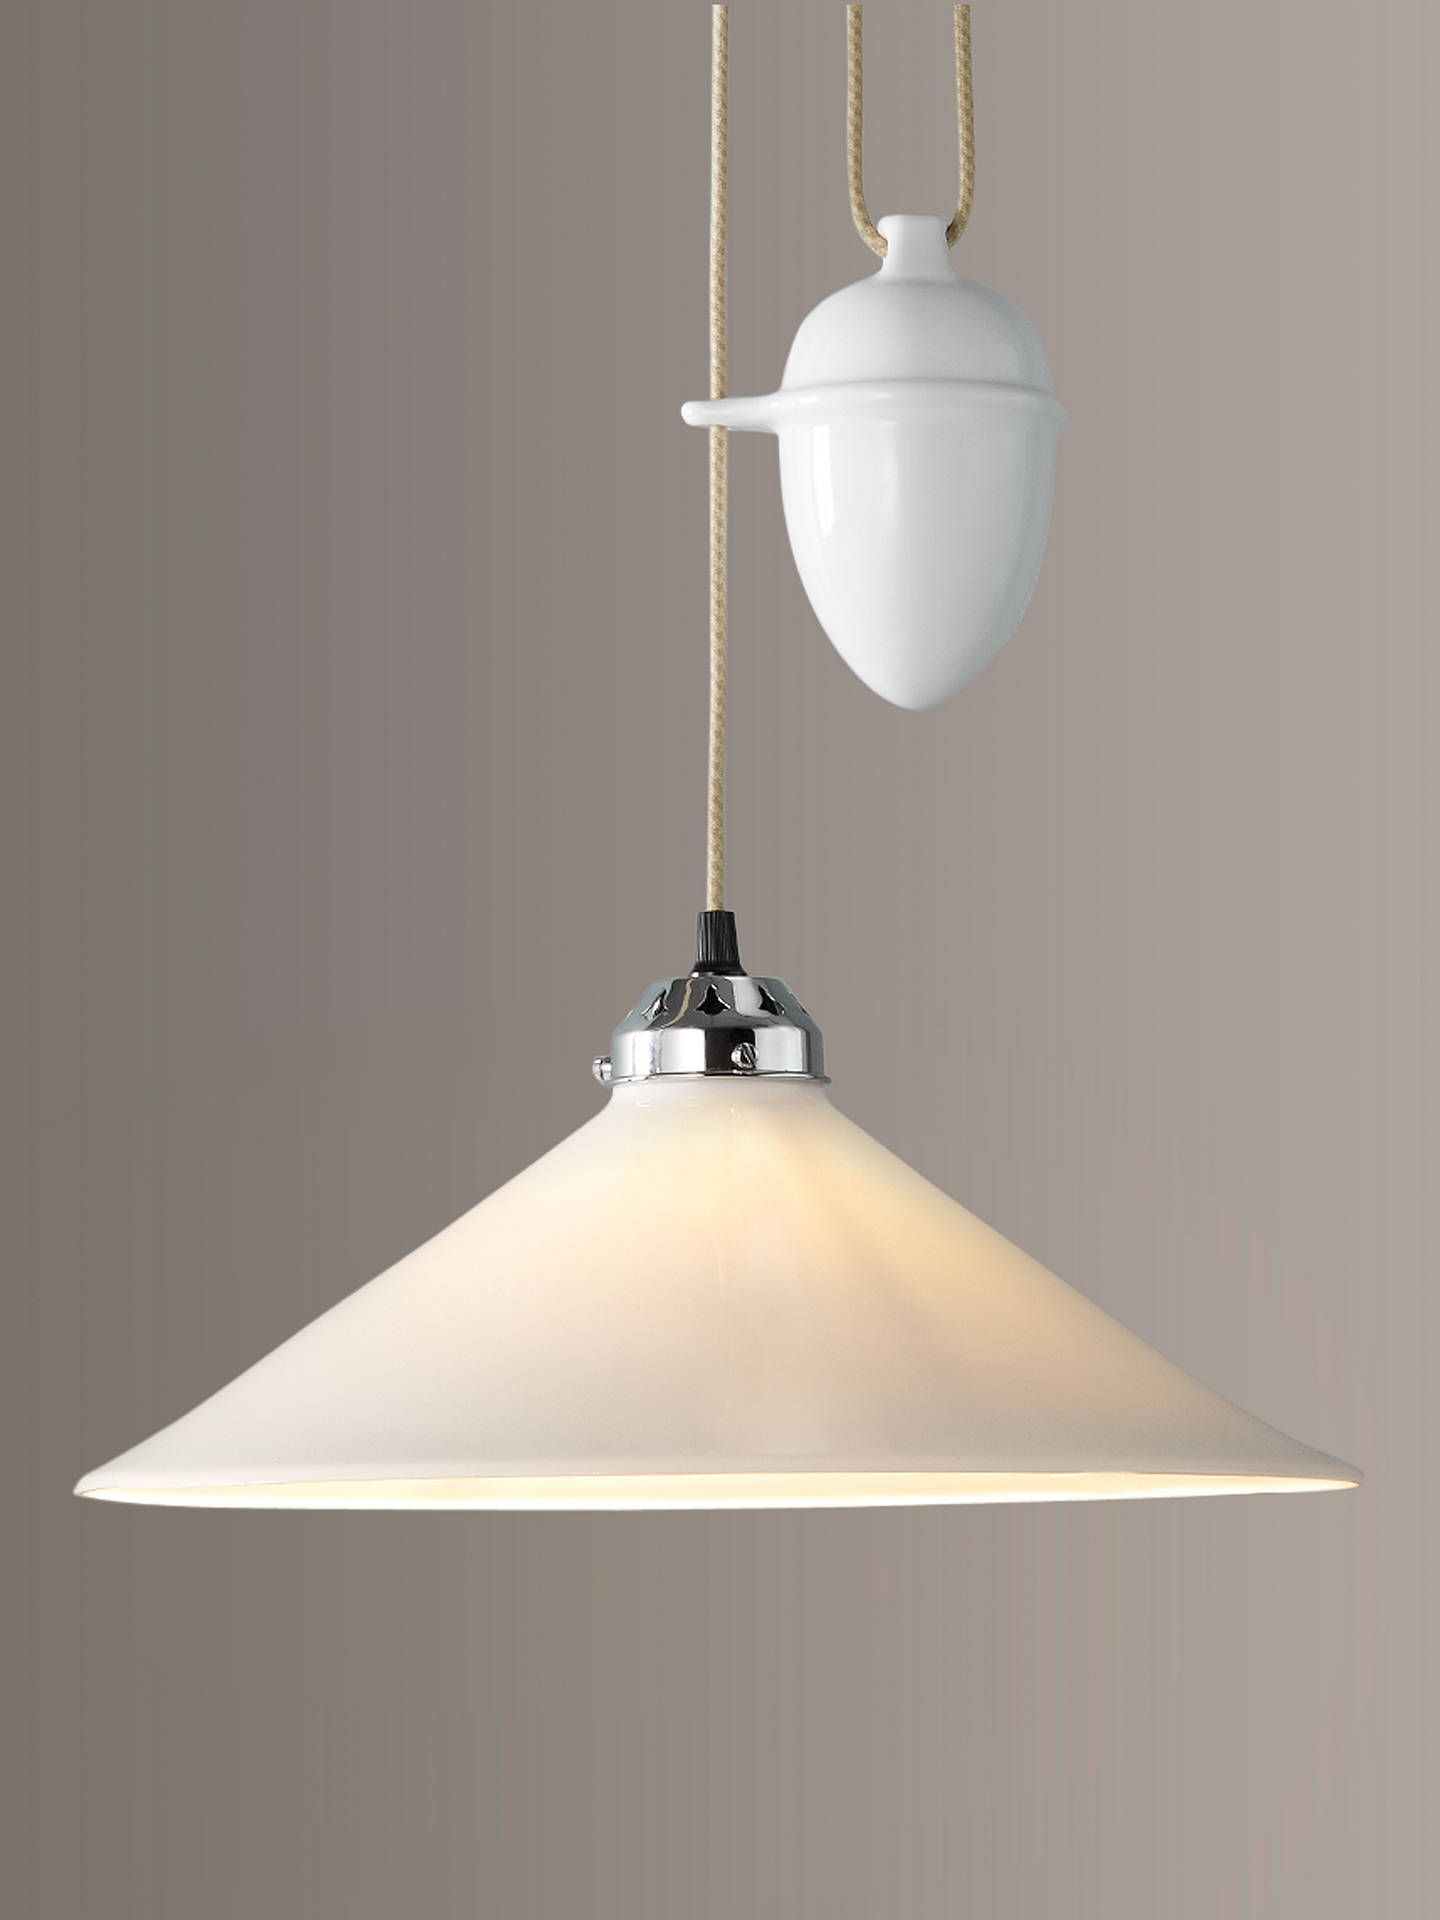 BuyOriginal BTC Cobb Ceiling Light Online at johnlewis.com